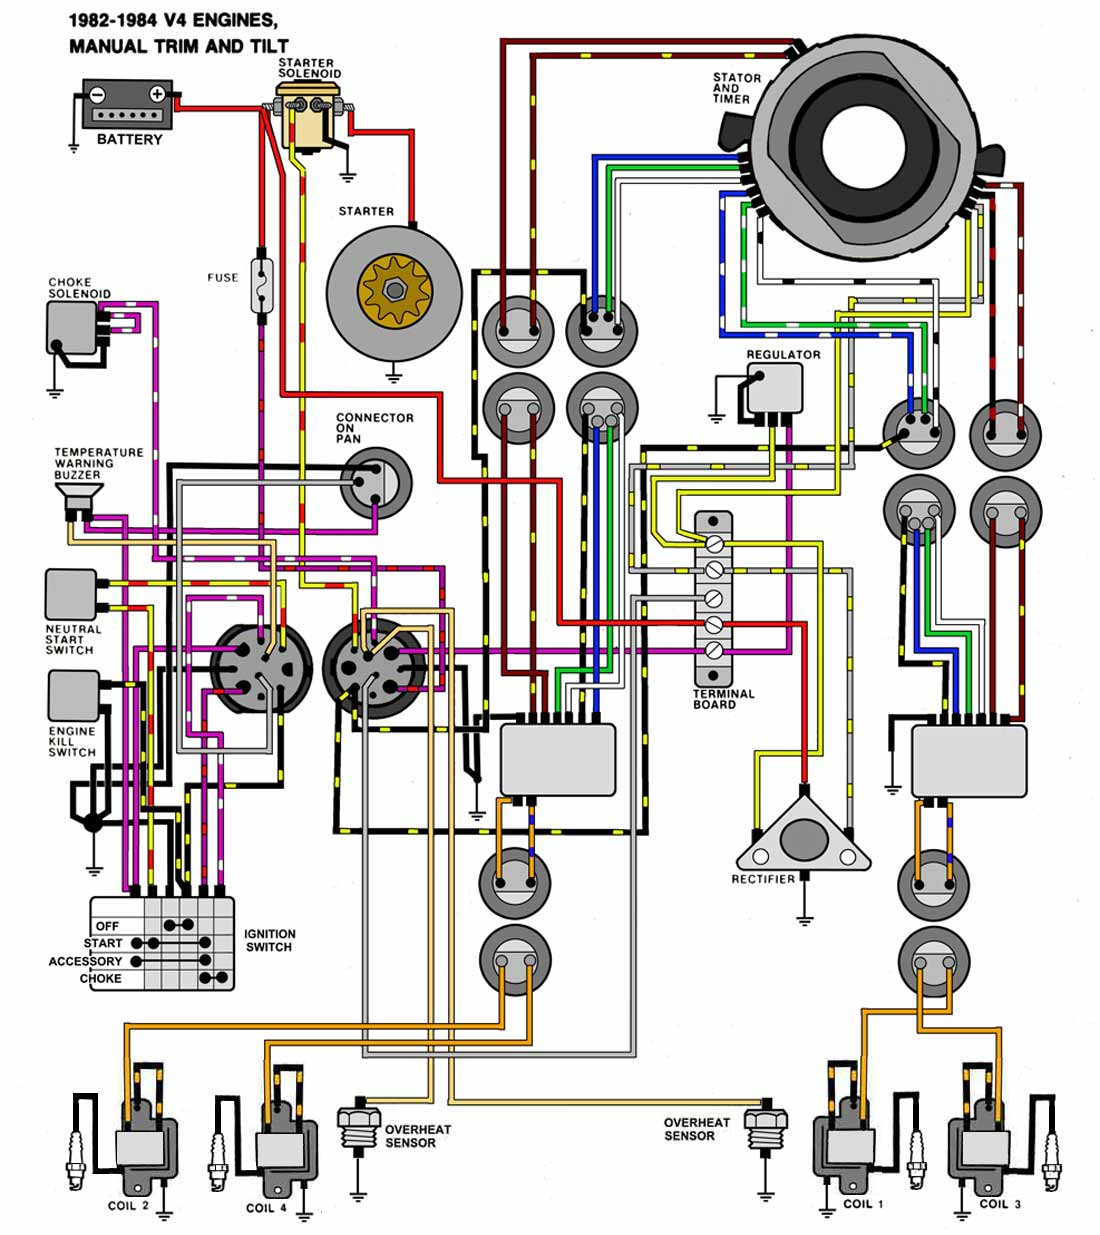 Evenrude Wiring Diagram Alternator Data Today Marine 3 Wire Evinrude Johnson Outboard Diagrams Mastertech 5